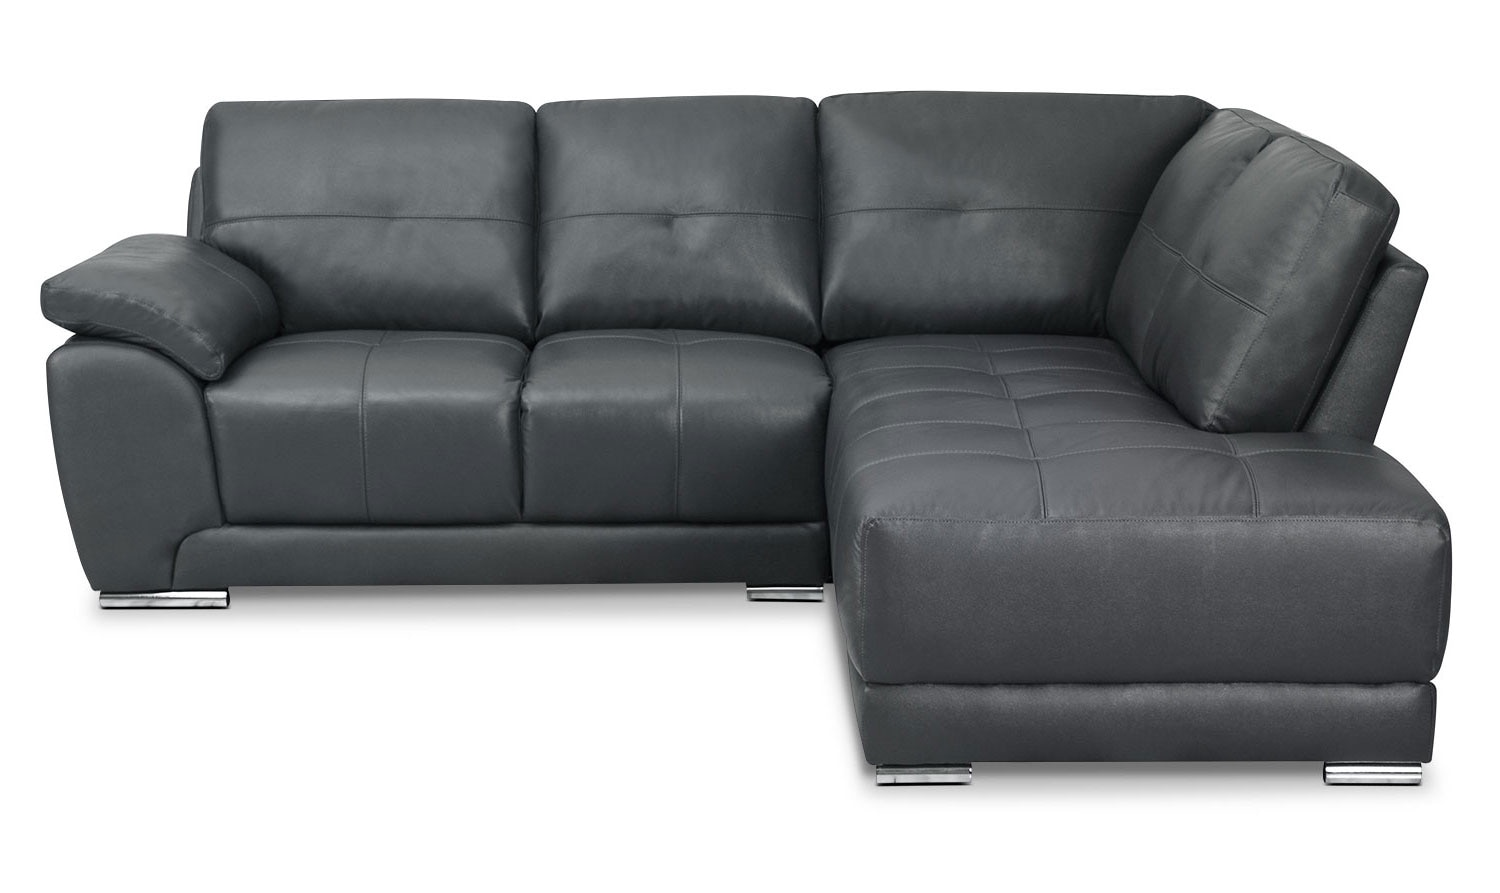 Living Room Furniture - Rylee 2-Piece Genuine Leather Right-Facing Sectional - Grey